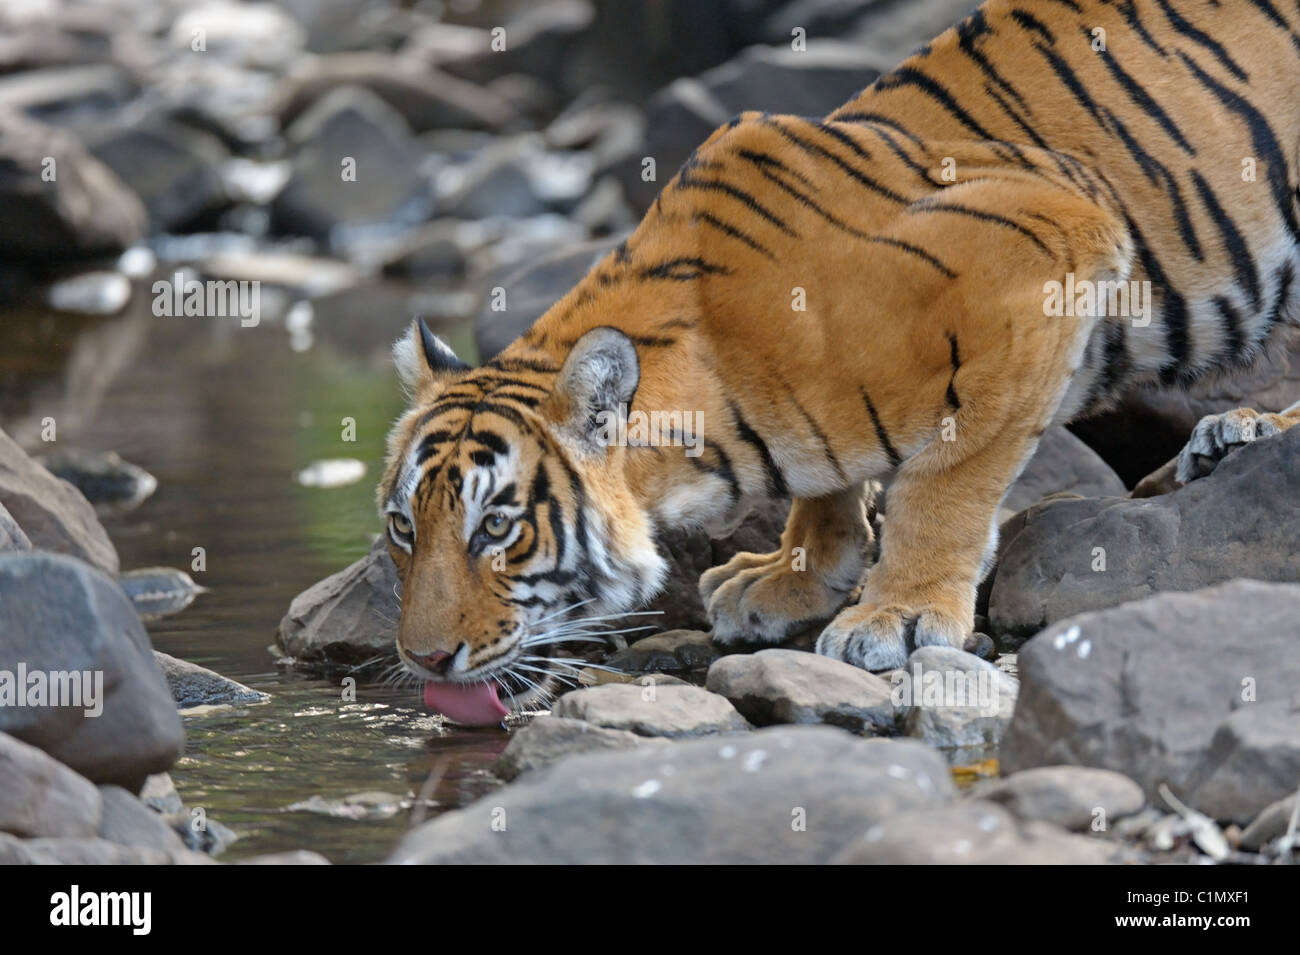 Tiger drinking from a waterhole in Ranthambhore national park, India - Stock Image